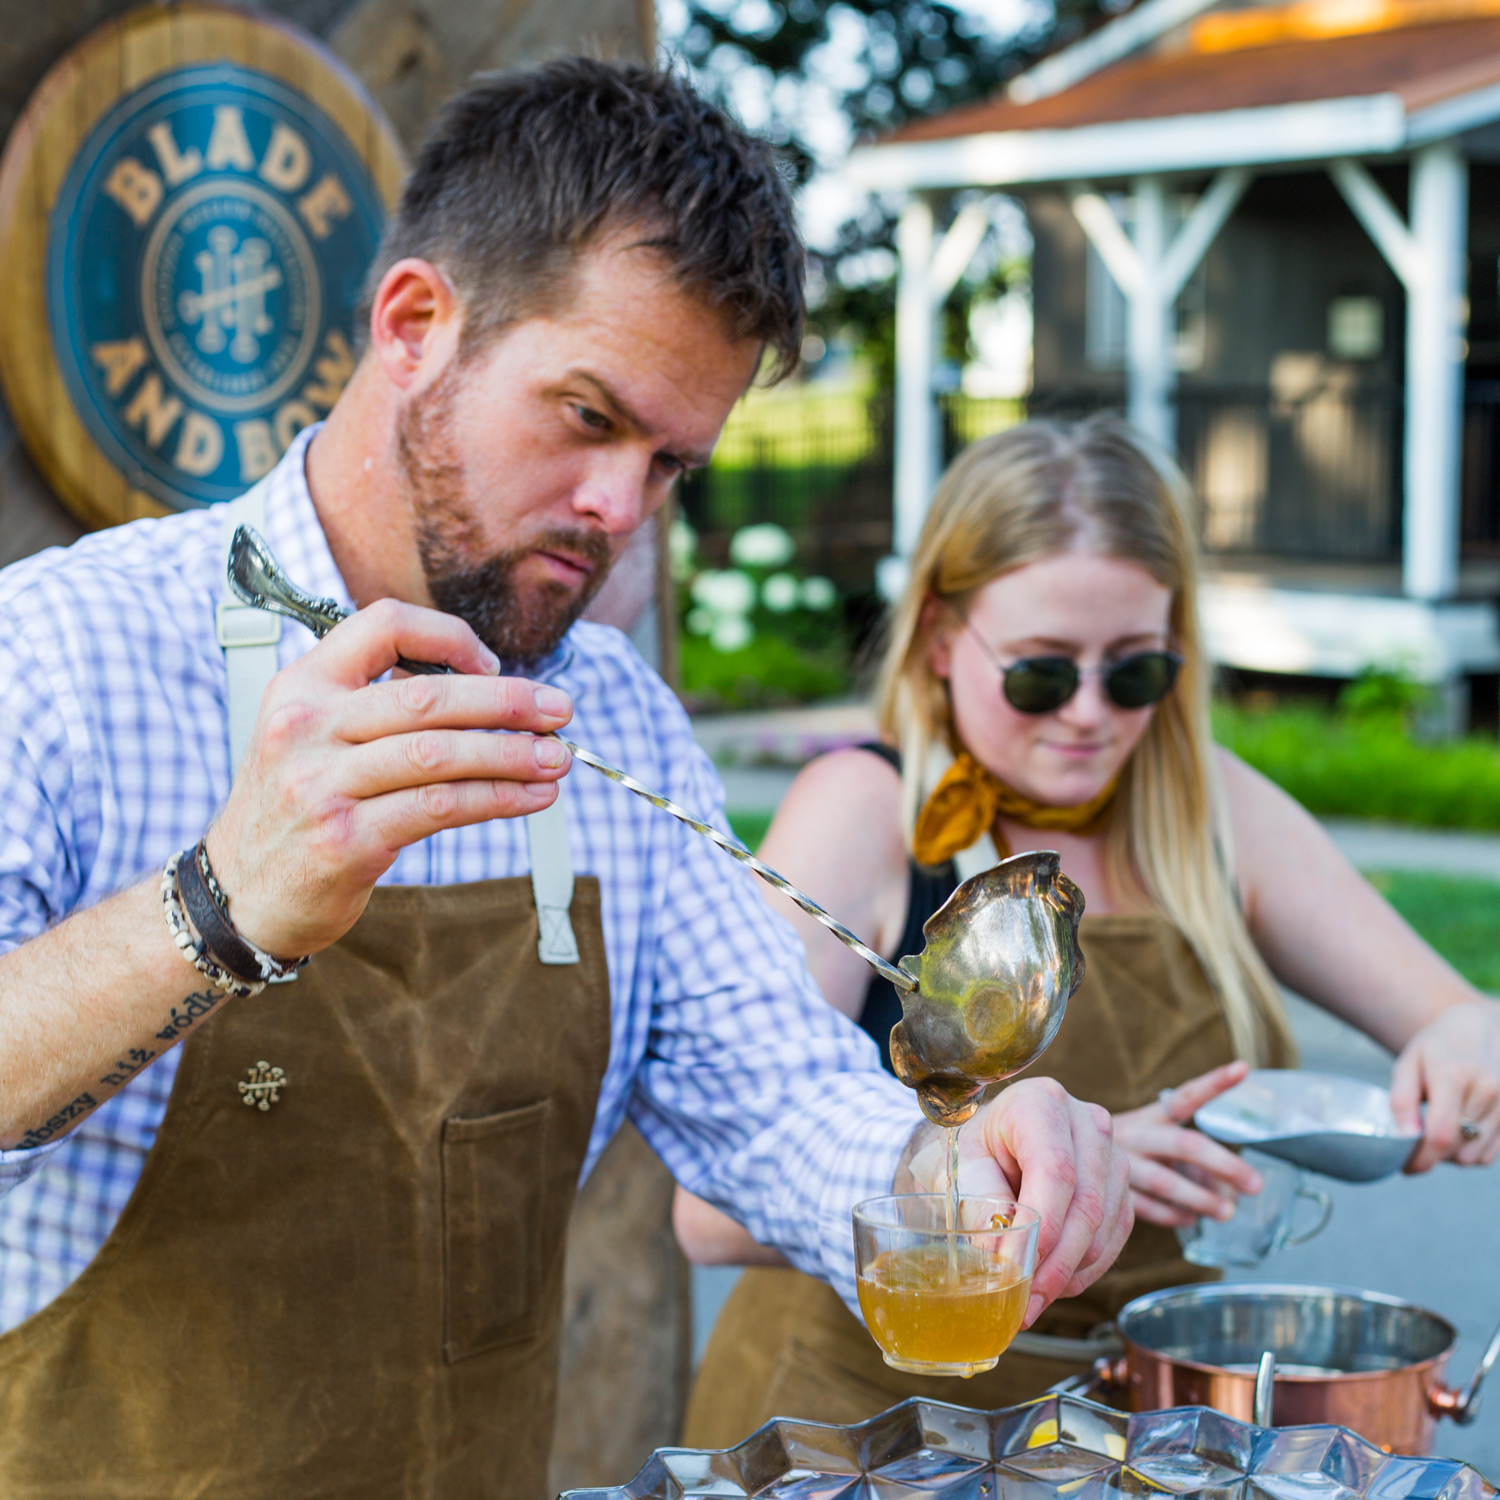 Man pouring punch